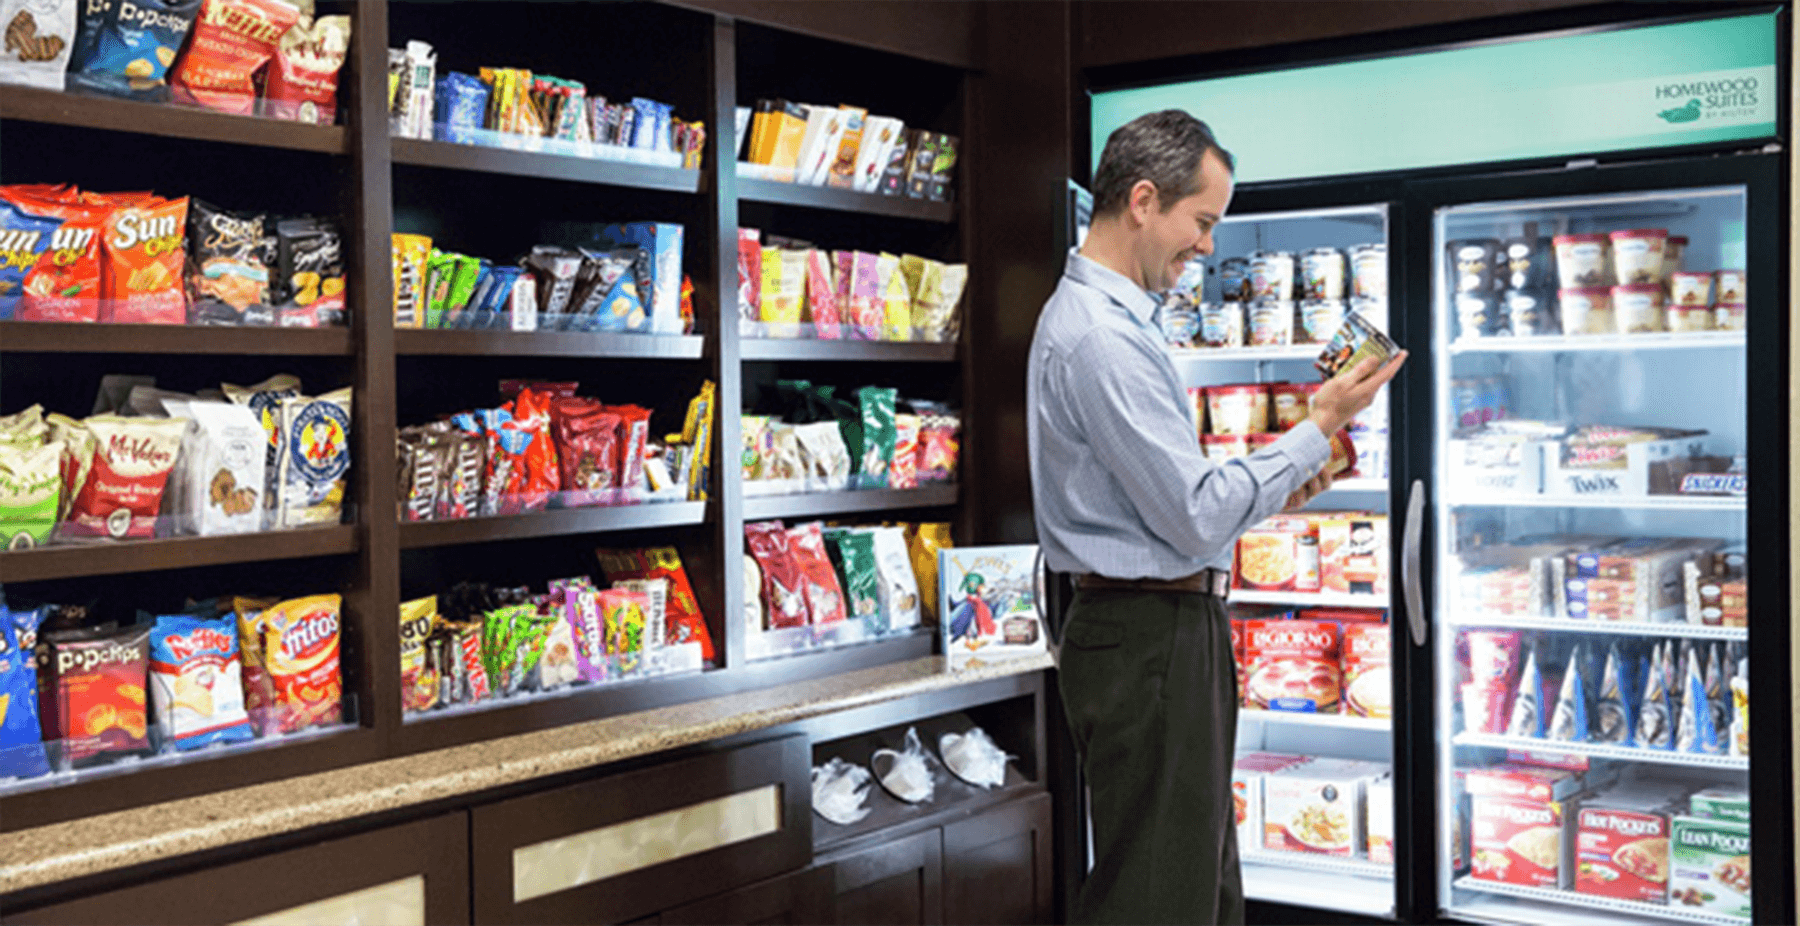 24-hour Convenience Store